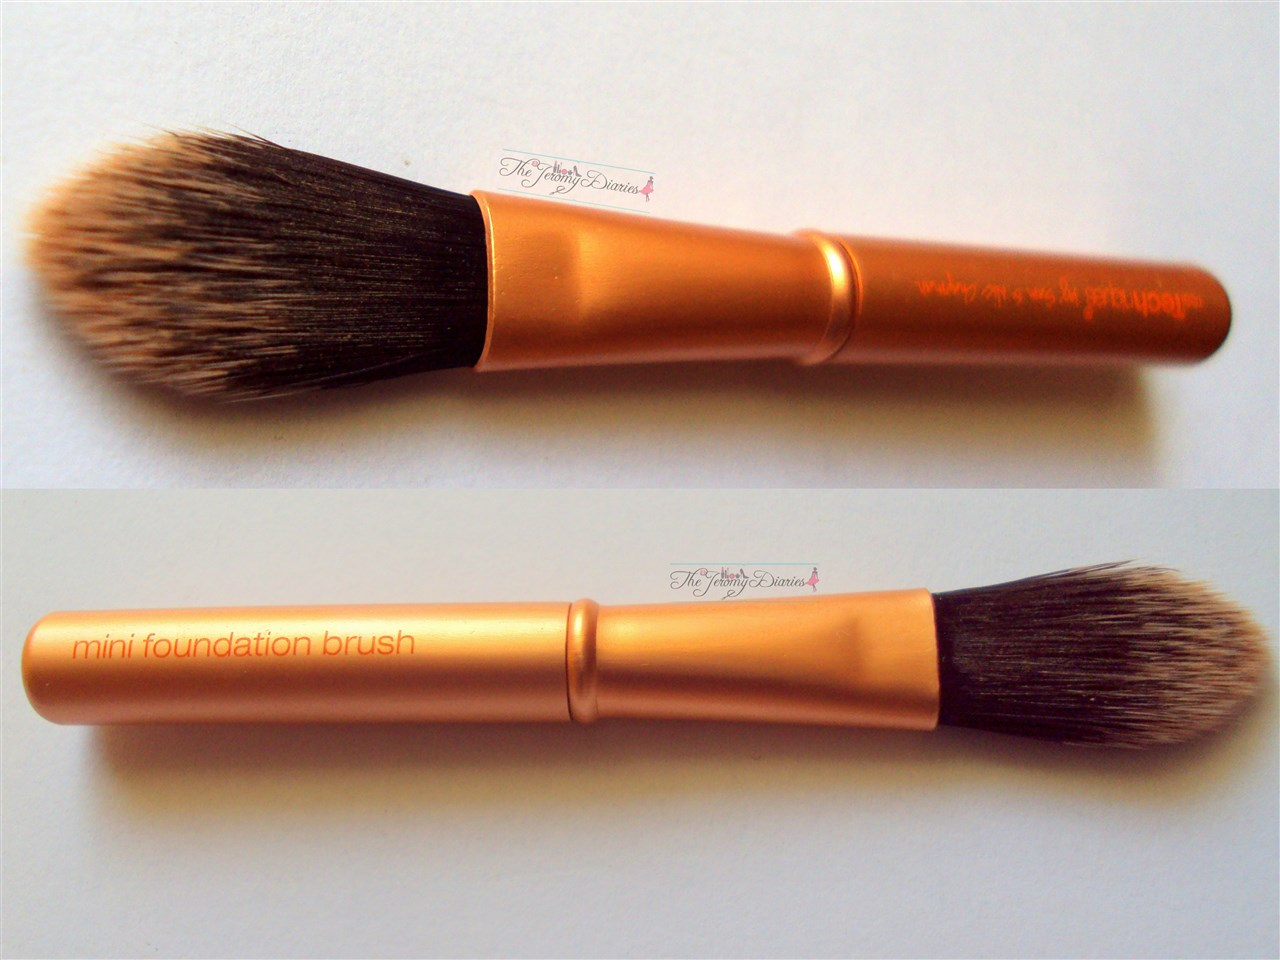 Real Techniques Mini Foundation Brush